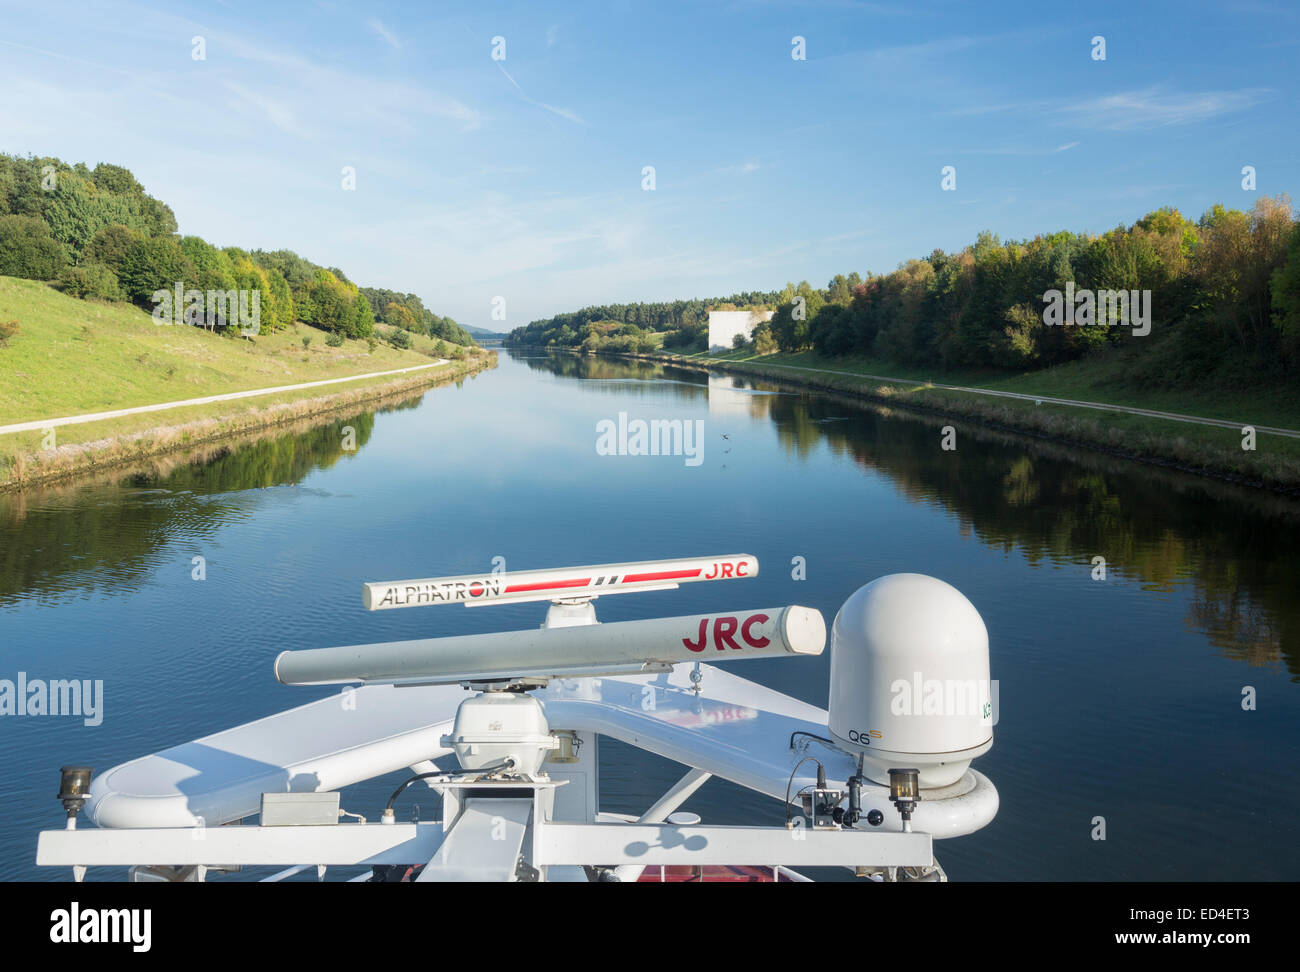 Share your Canal cruise danube